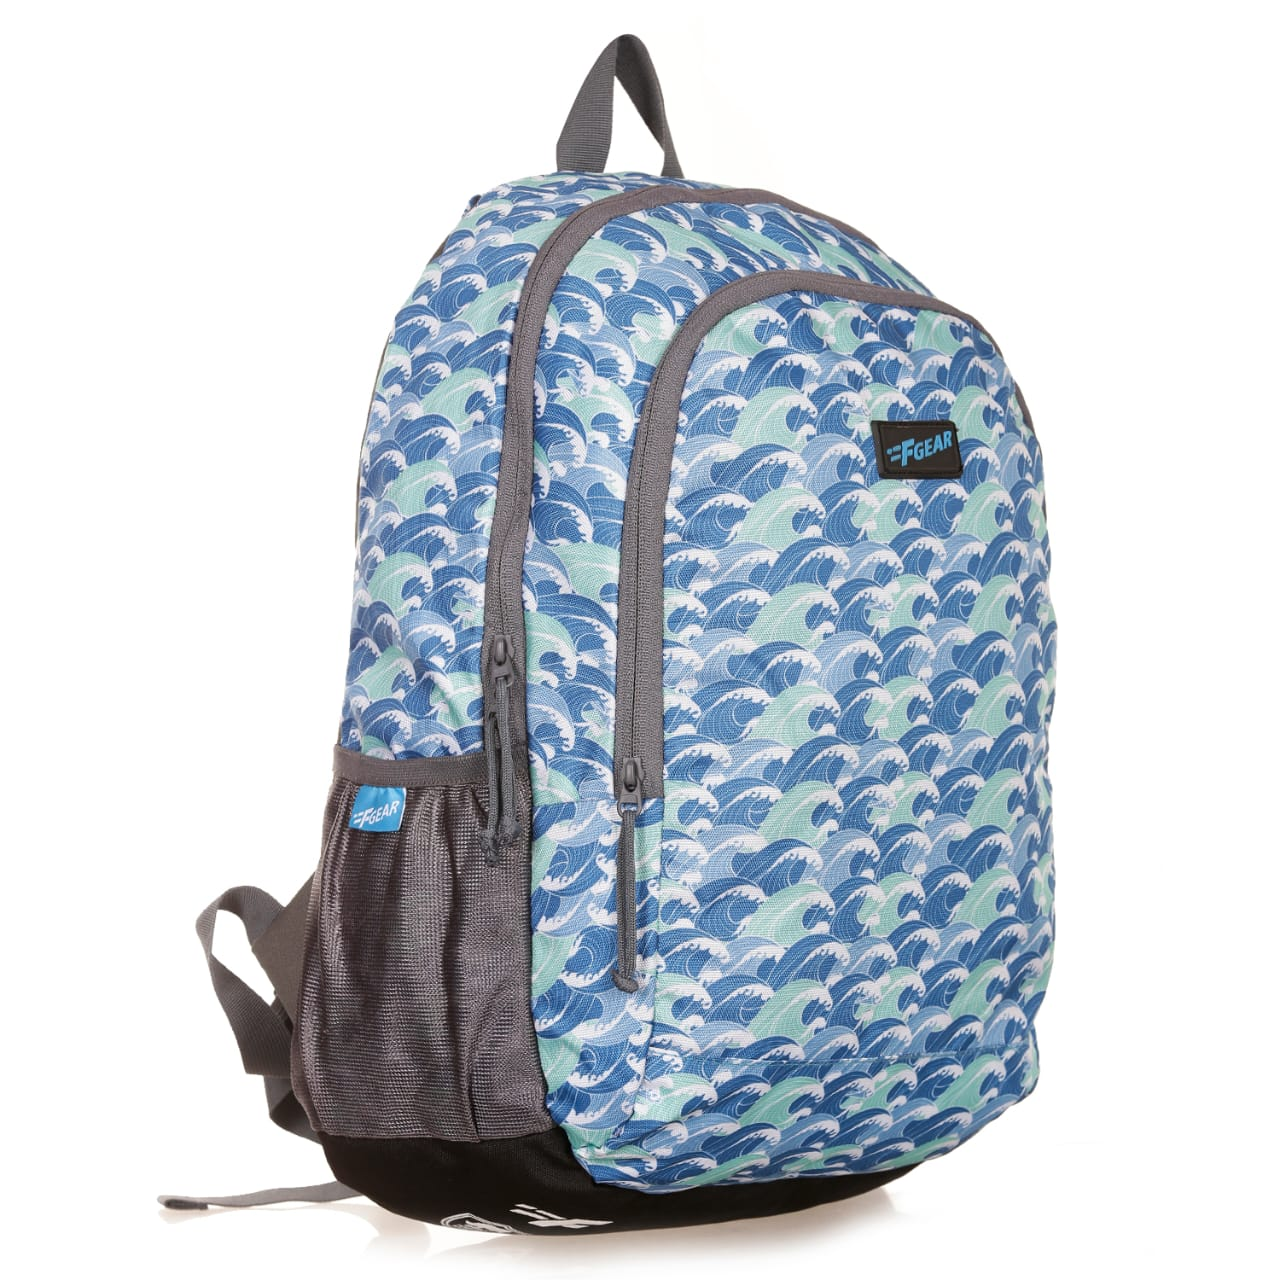 F Gear Castle Waves Blue  22 L Polyester Backpack (3336)